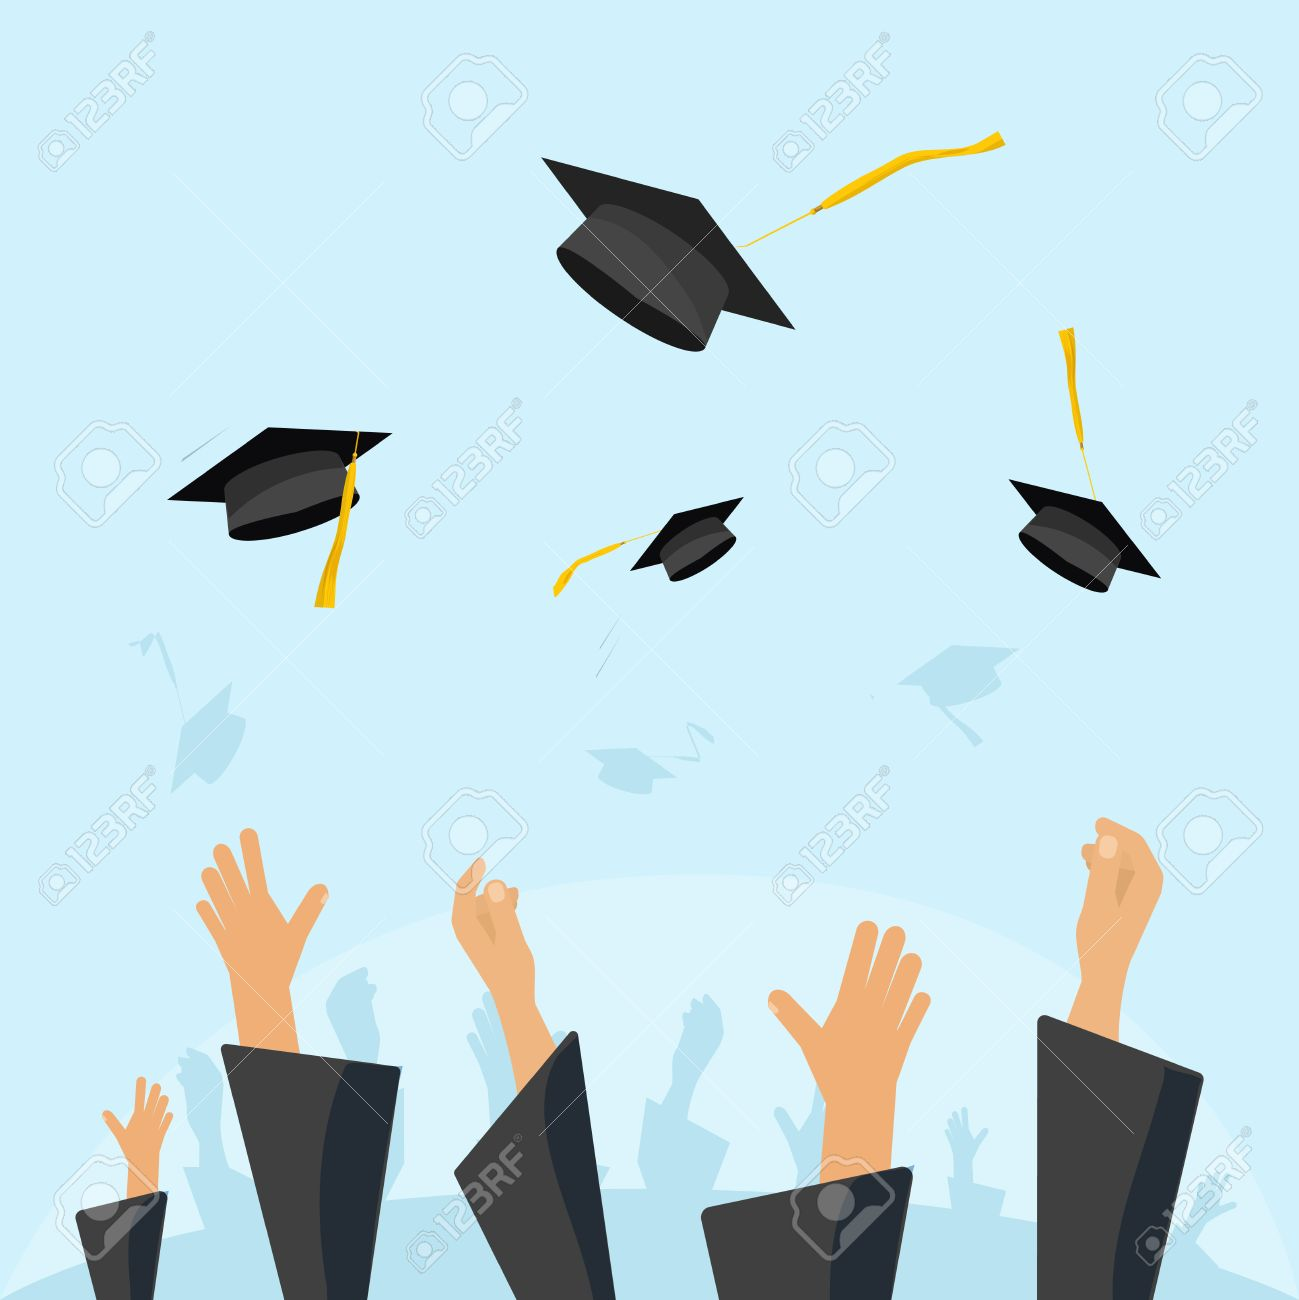 Graduation Hats In The Air Clipart.